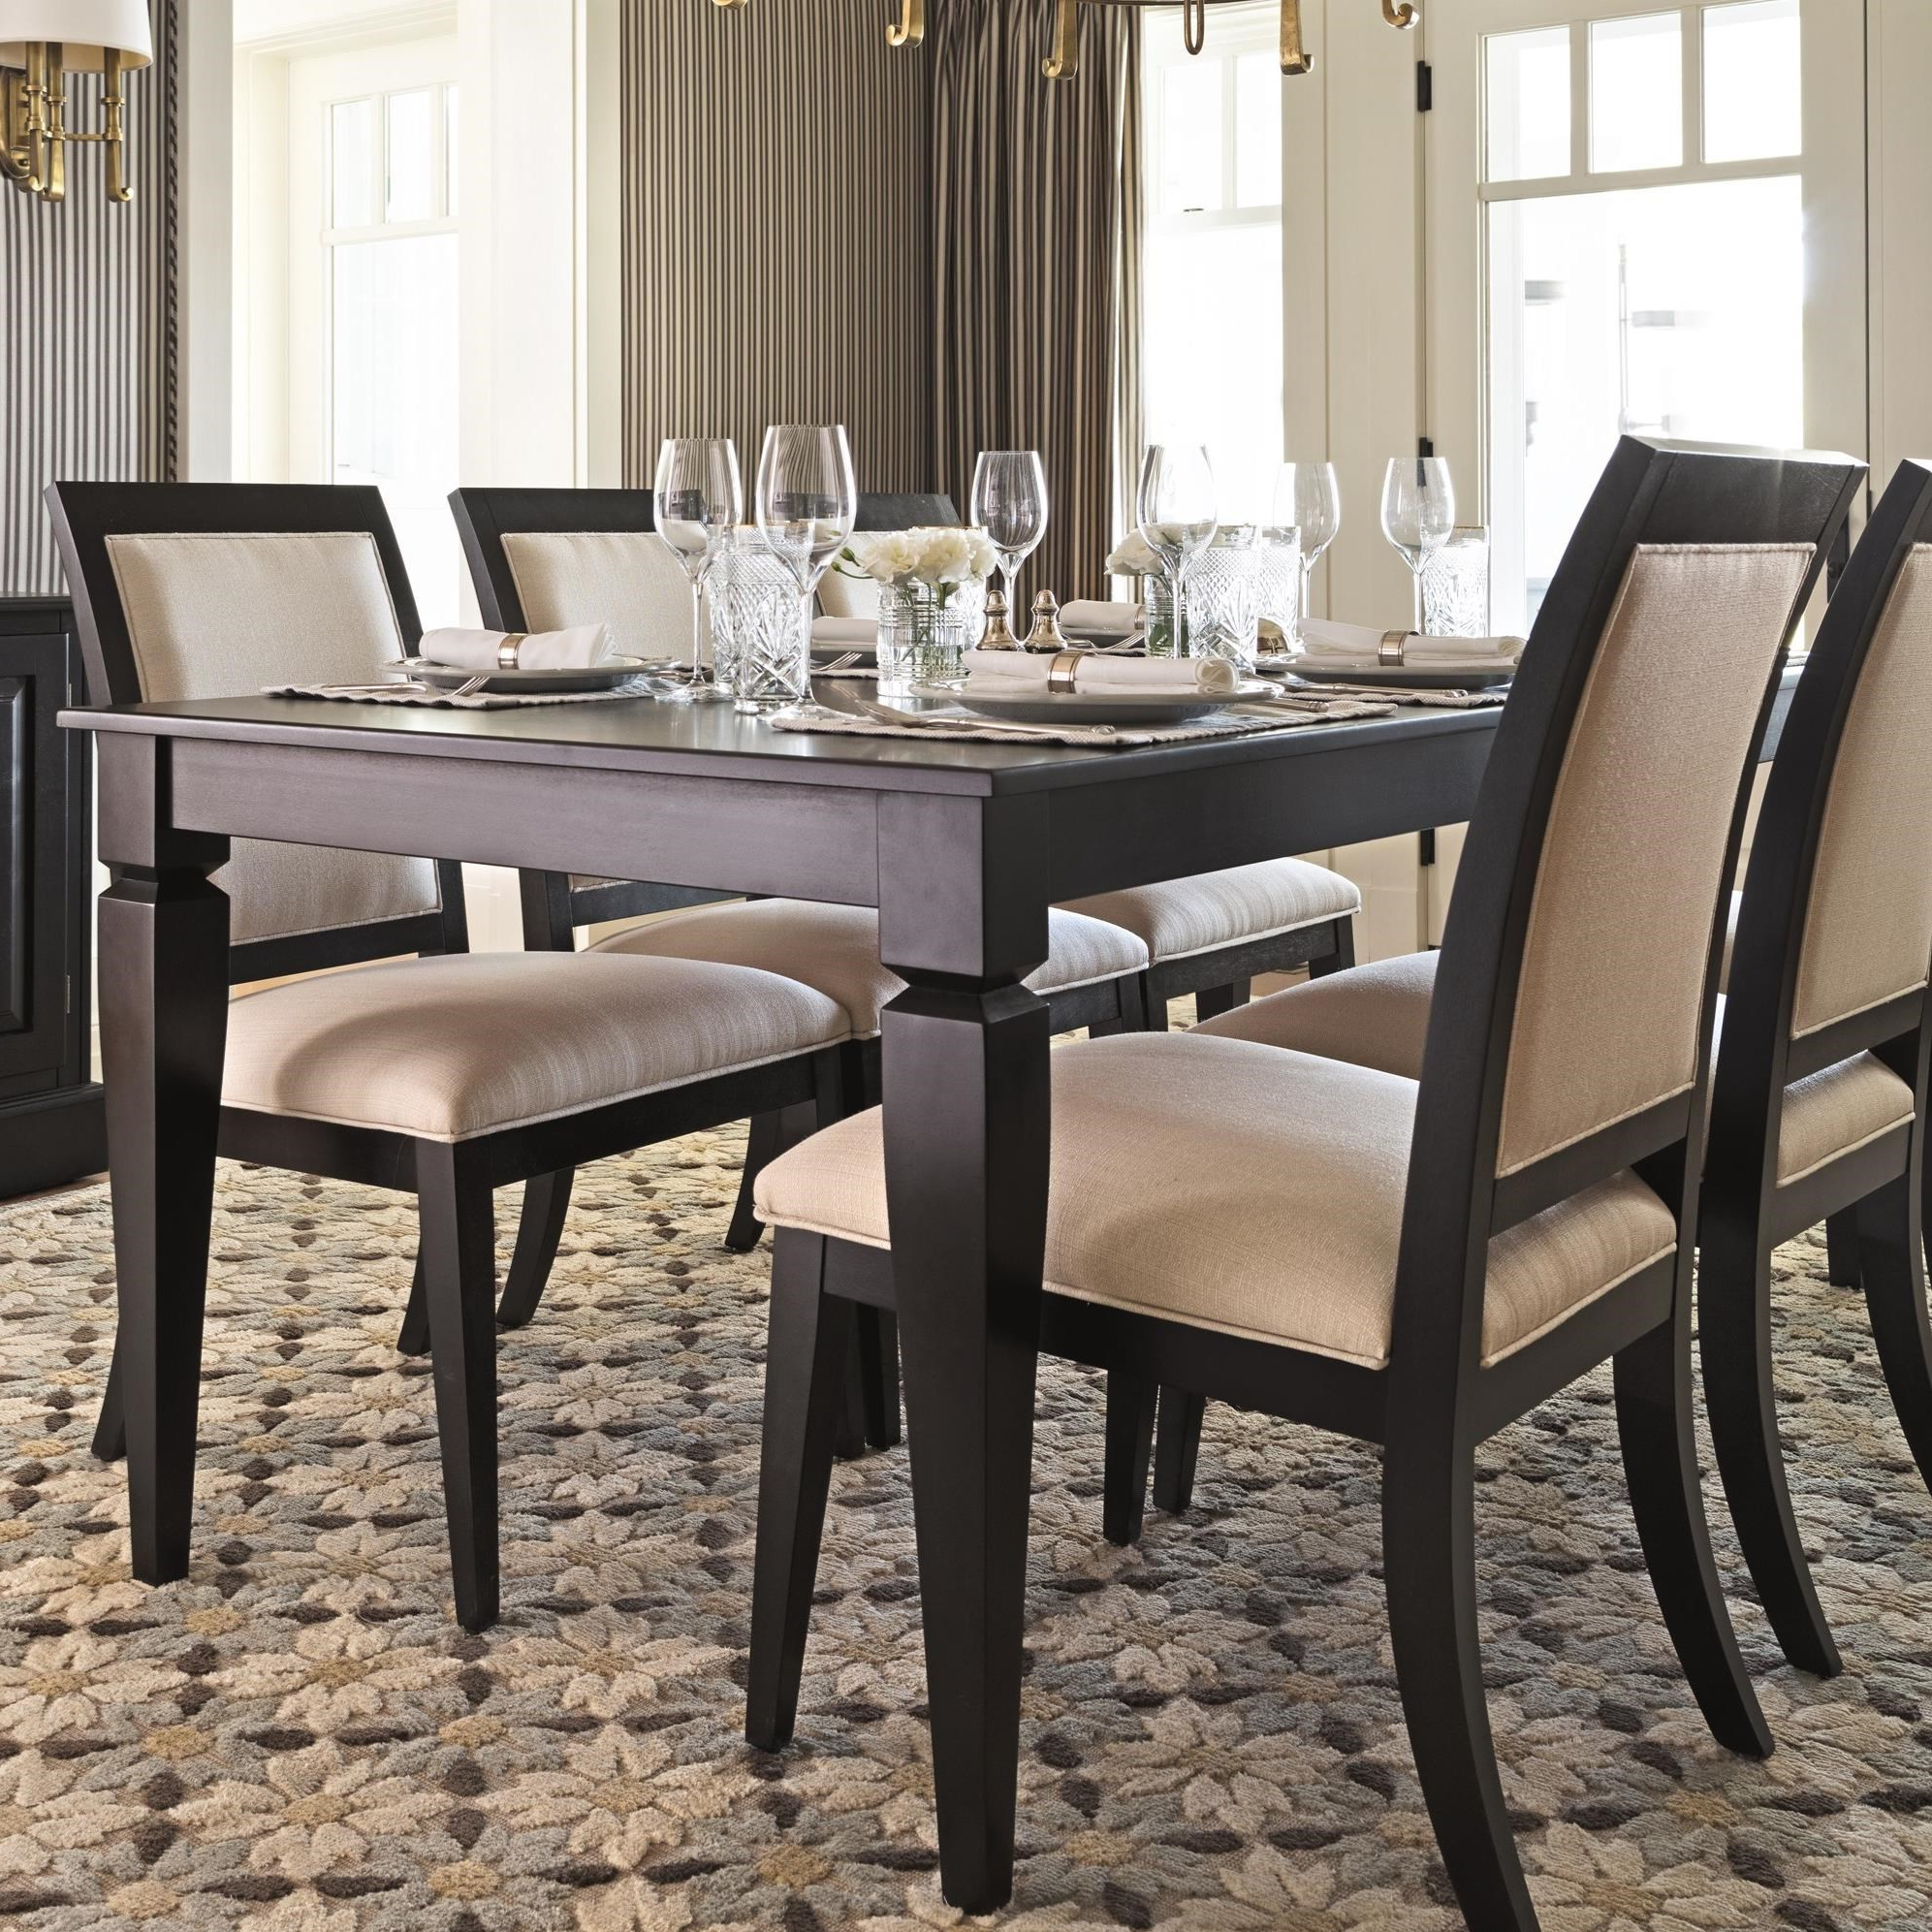 2019 Transitional 4-Seating Drop Leaf Casual Dining Tables pertaining to Canadel Custom Dining Customizable Rectangular Dining Table